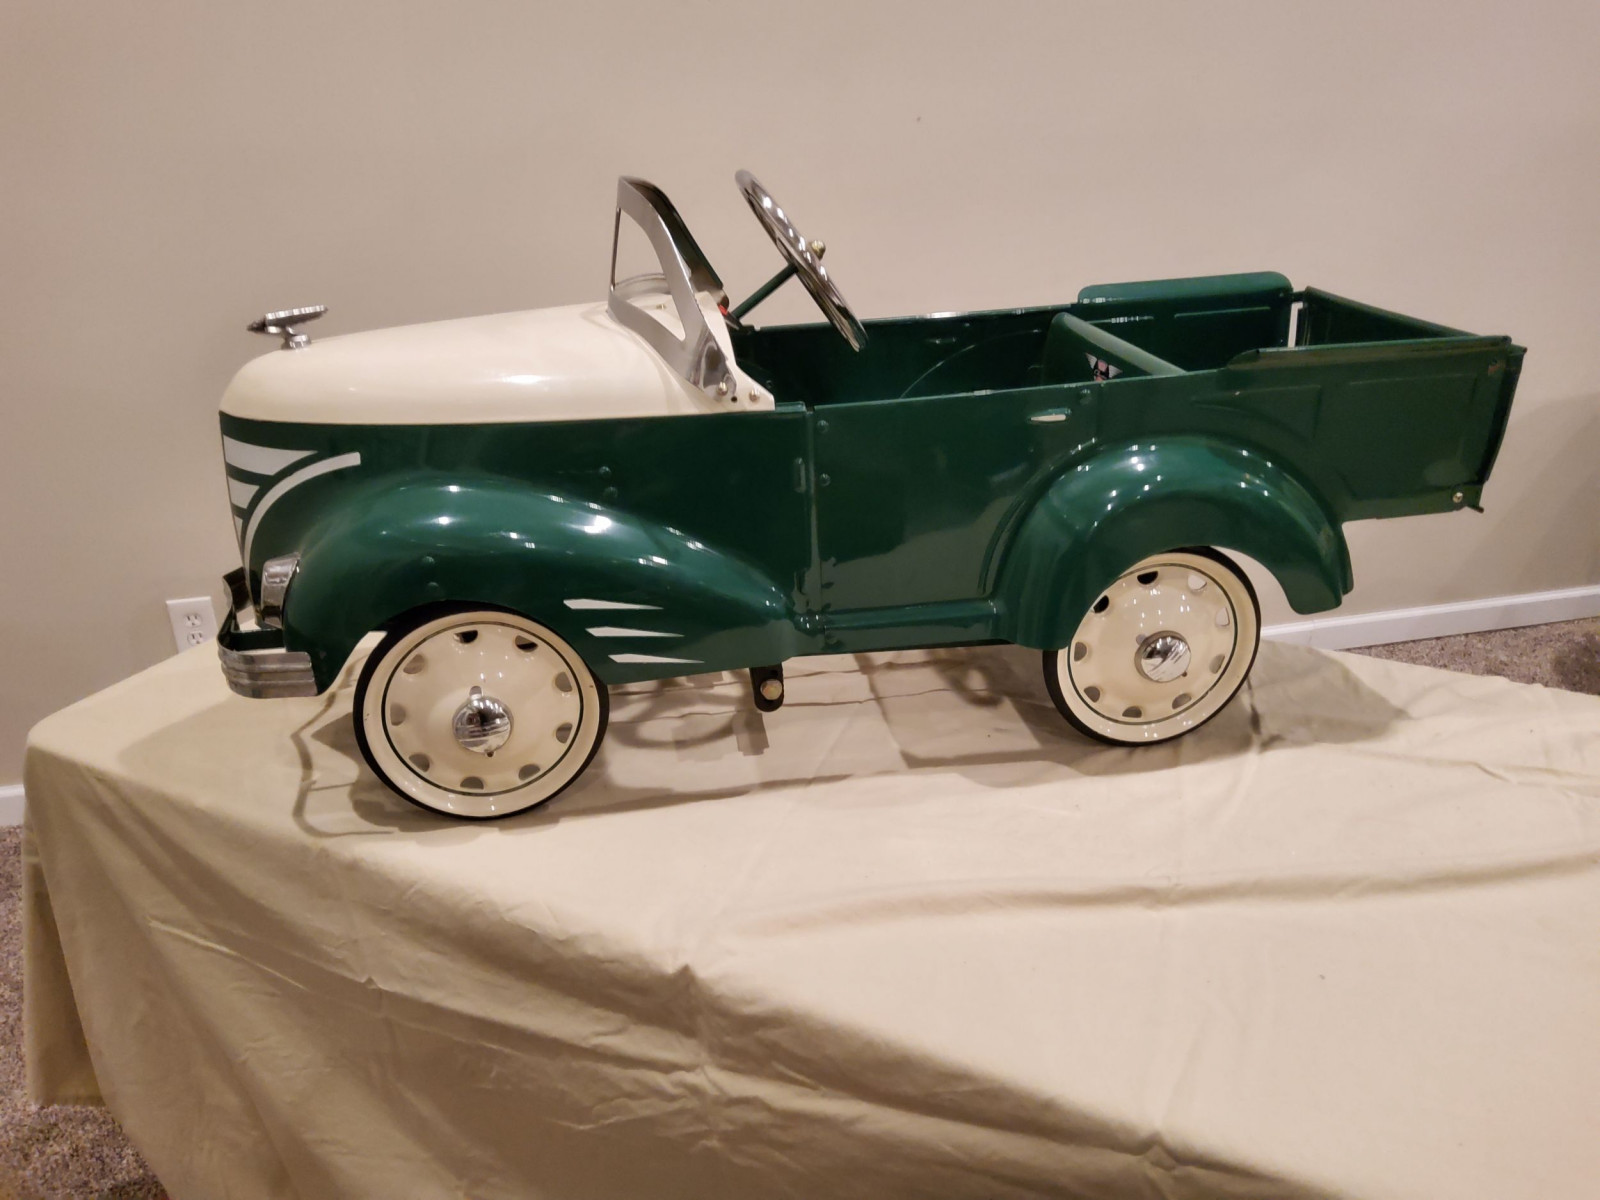 1940's Gendron Ford Pickup Pedal Car - Image 5